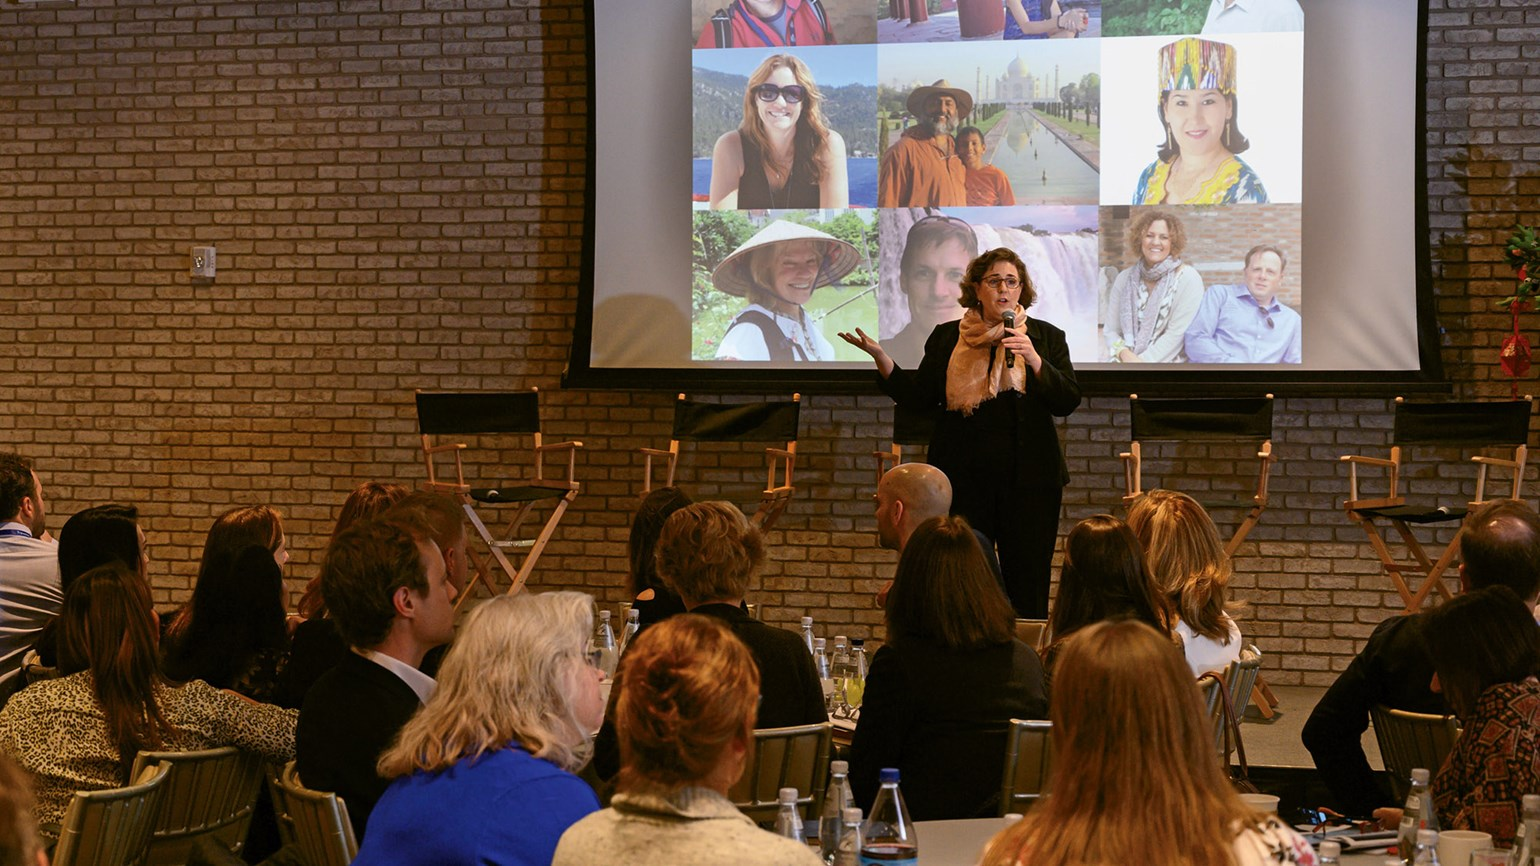 Tourism issues take center stage at Wendy Perrin summit